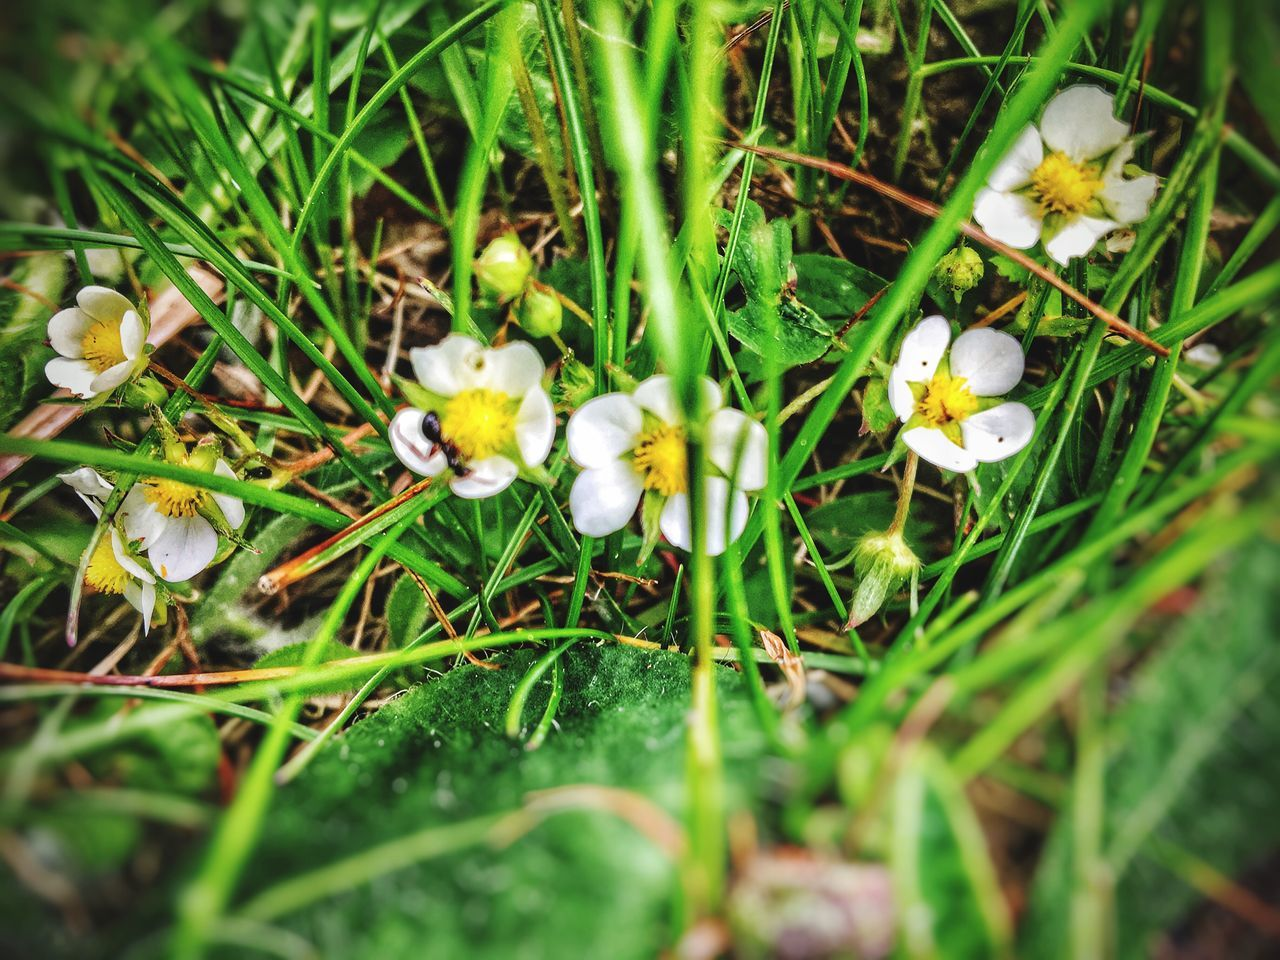 flower, nature, growth, fragility, beauty in nature, freshness, petal, selective focus, plant, no people, outdoors, day, green color, flower head, close-up, yellow, snowdrop, grass